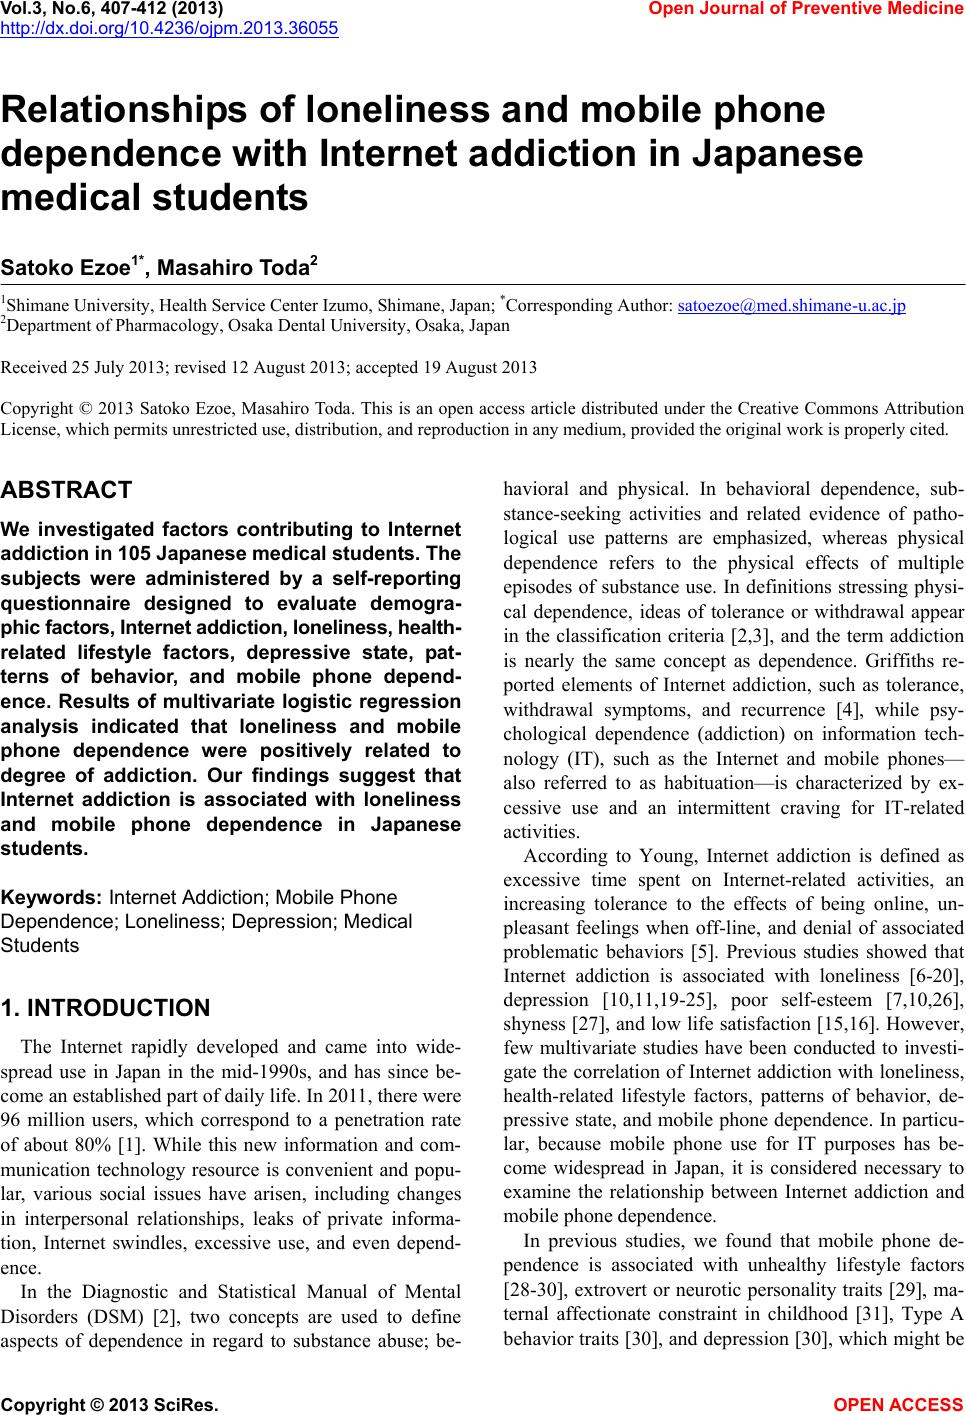 introduction of a research paper about computer addiction